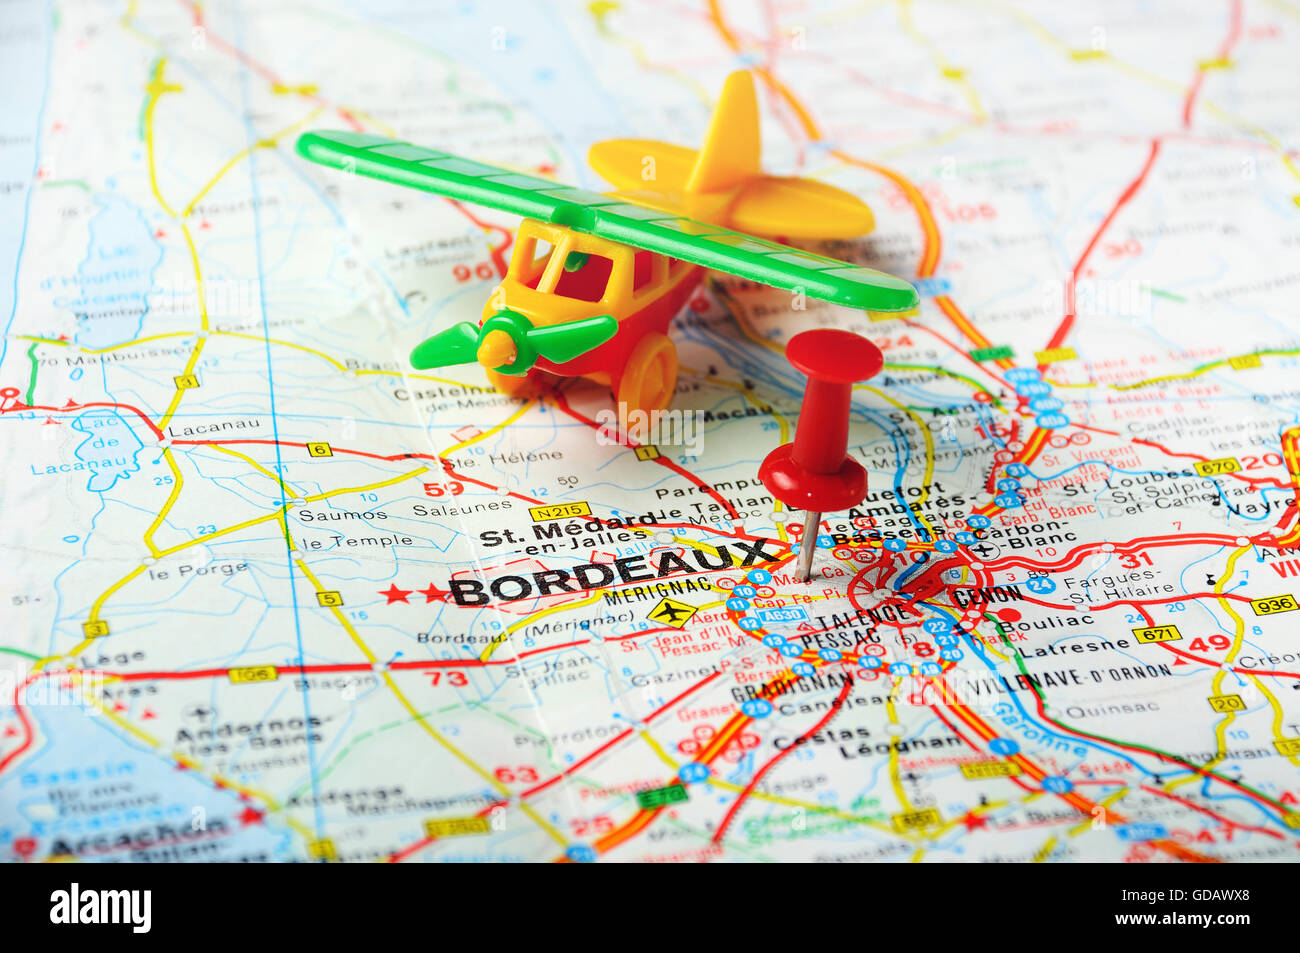 Bordeaux On Map Of France.Red Push Pin Pointing At Bordeaux France Map And Airplane Stock